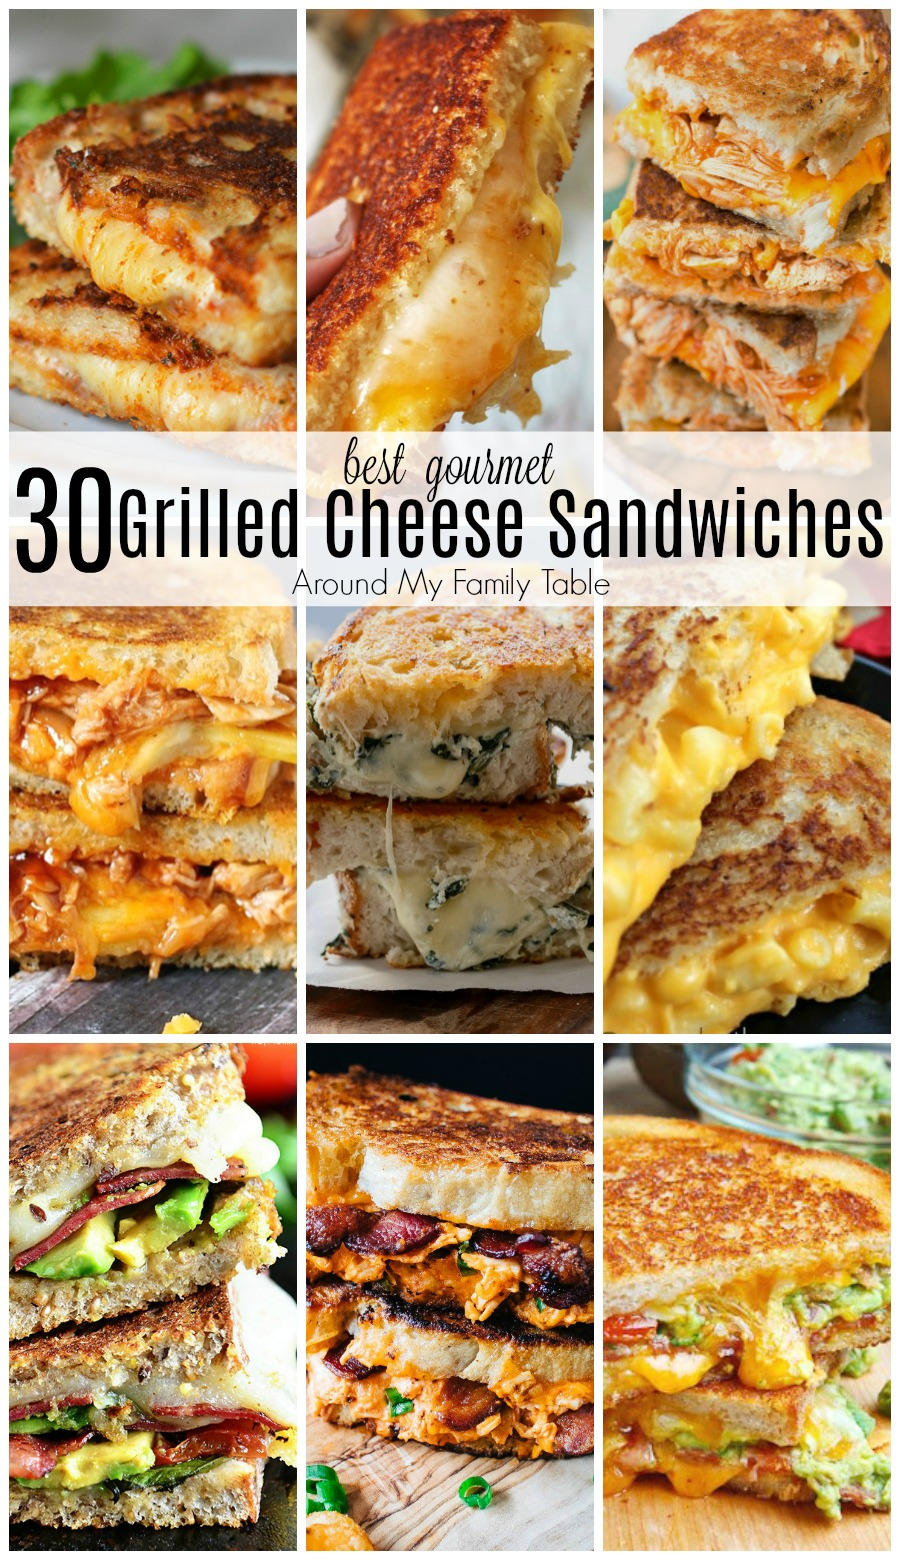 These Are  Of The Best Gourmet Grilled Cheese Sandwiches That Will Satisfy Your Craving For